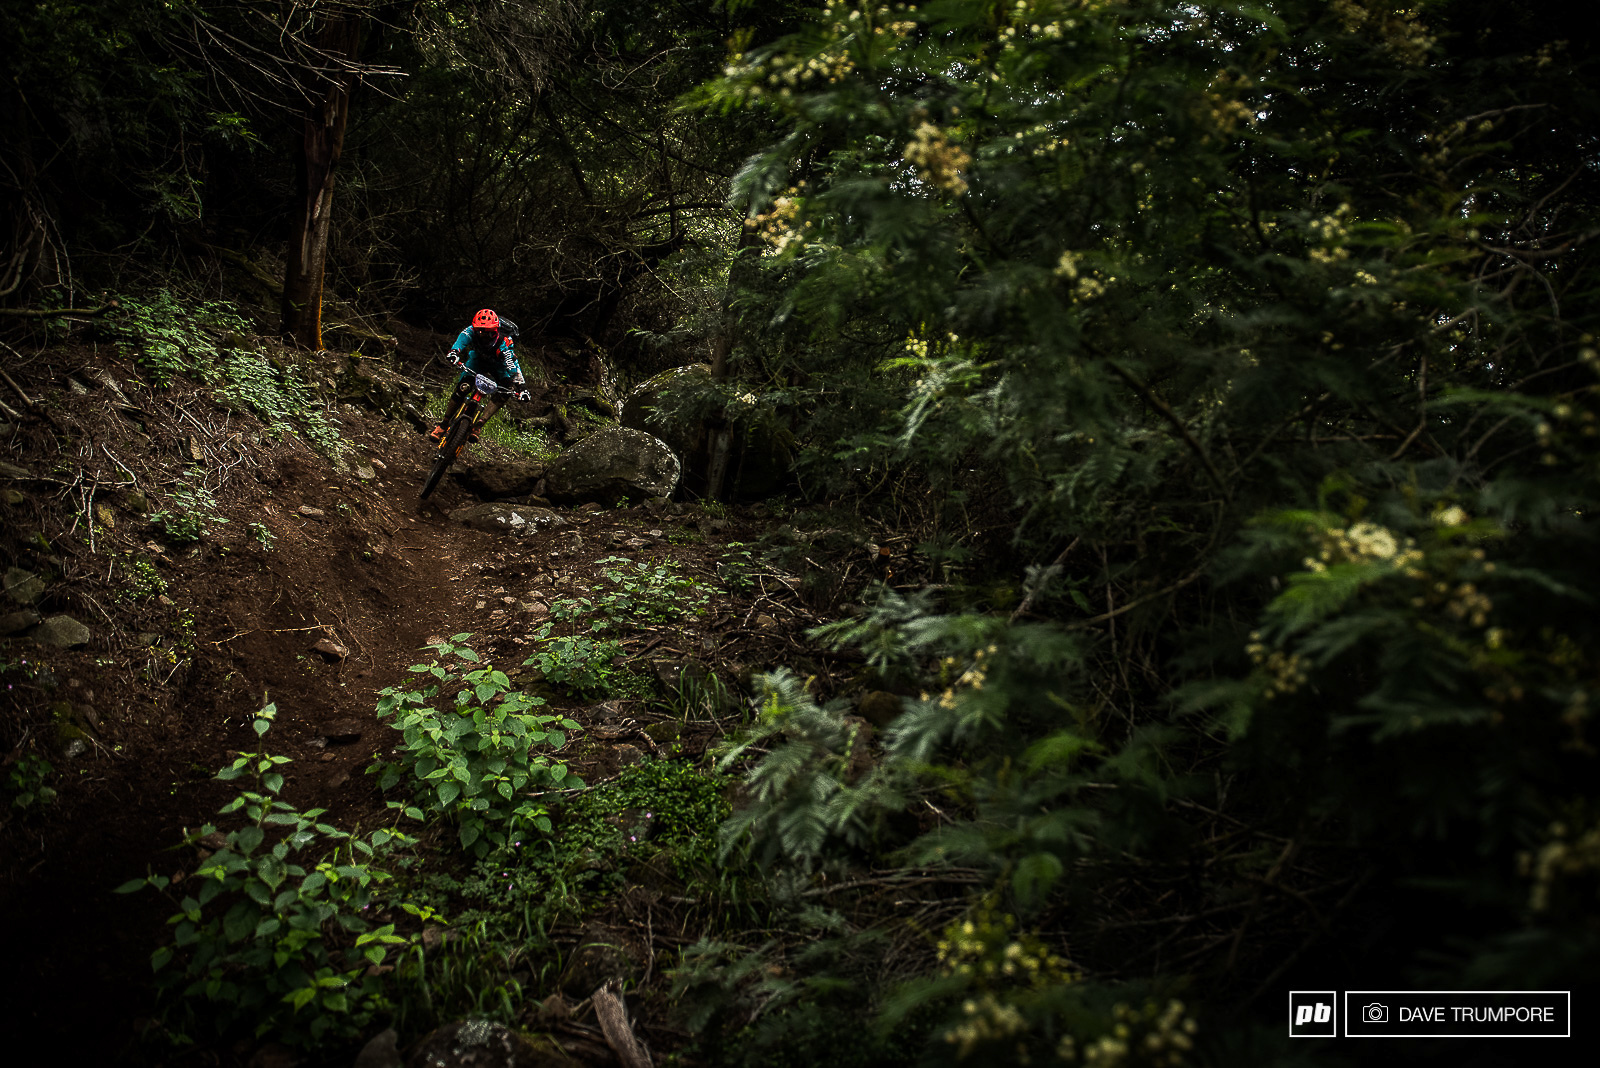 Ludo May through some lush Madeira forest back in 2017 when the EWS first came to Madeira